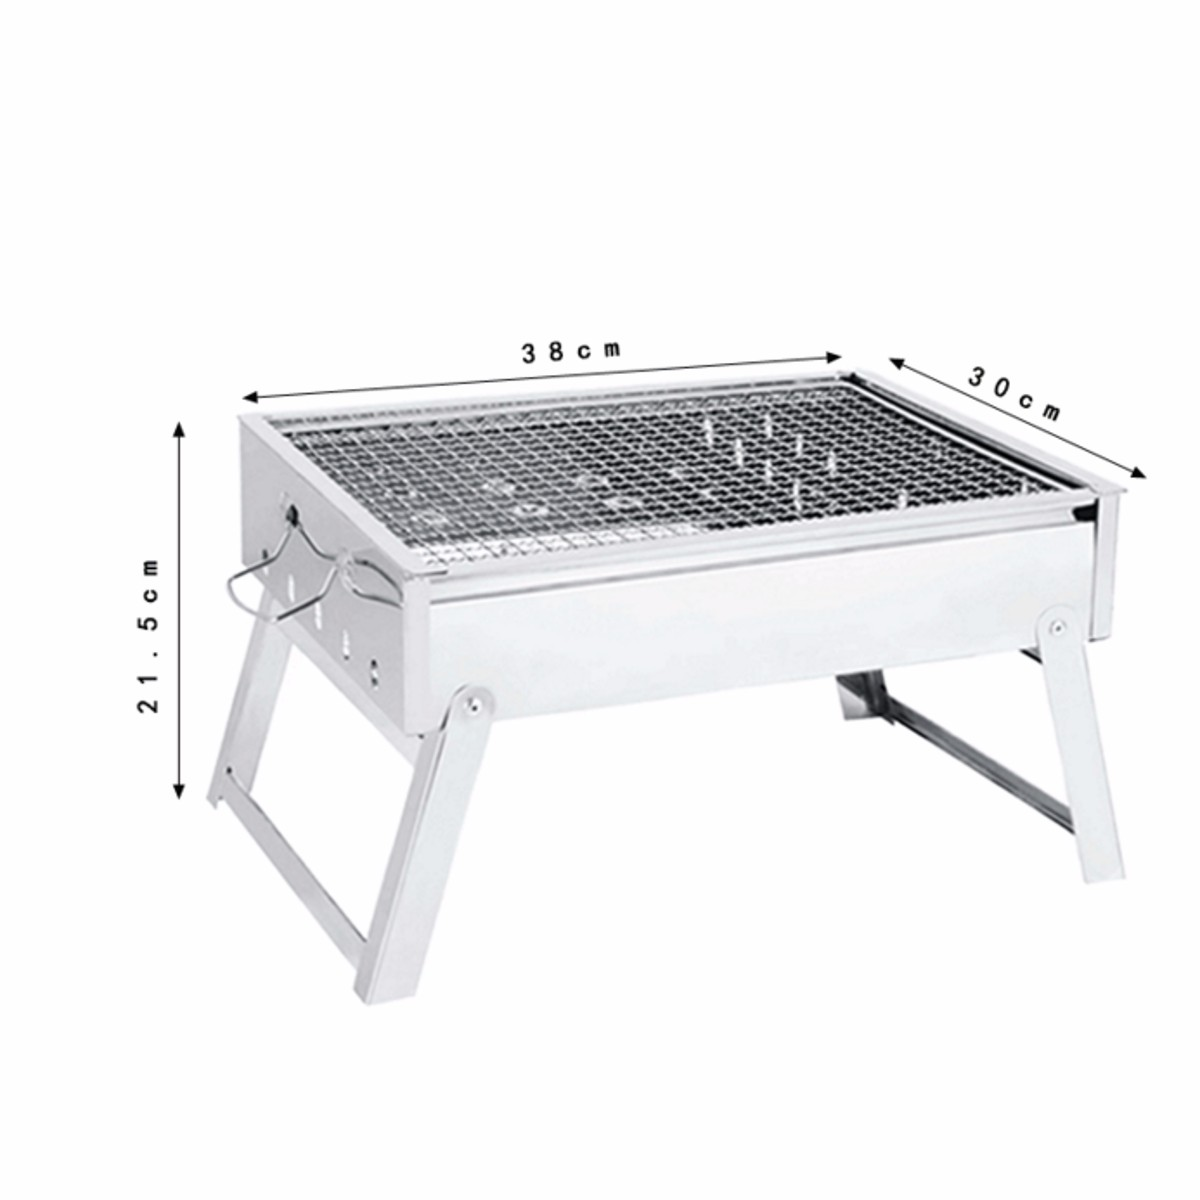 Portable Grill Rack Stainless Steel Stove Pan Outdoor Roaster Charcoal Barbecue Home Oven Set Cooking Picnic Bbq Camping In Grills From